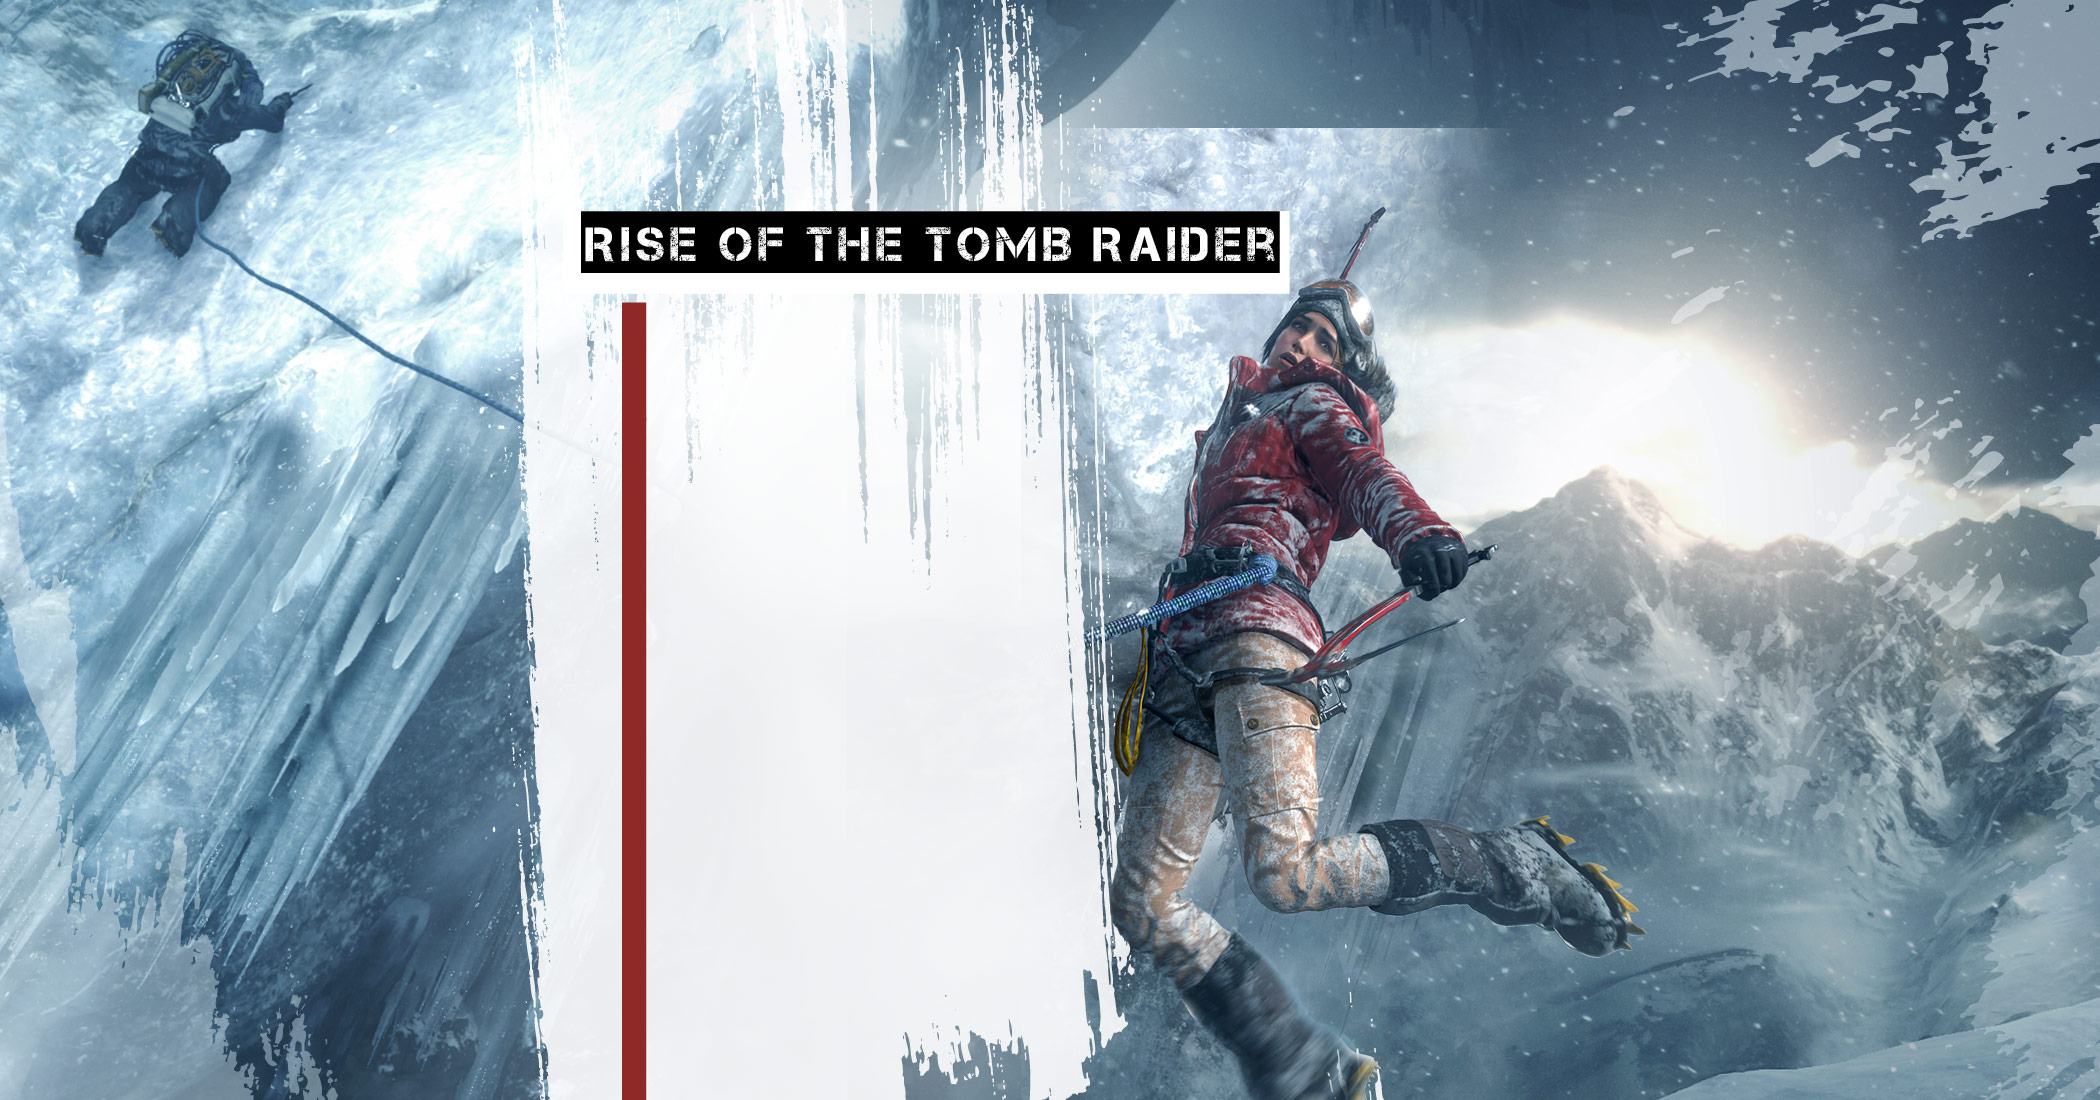 Laru Croft v Rise of the Tomb Raider bude na Sibiři ohrožovat medvěd 105509